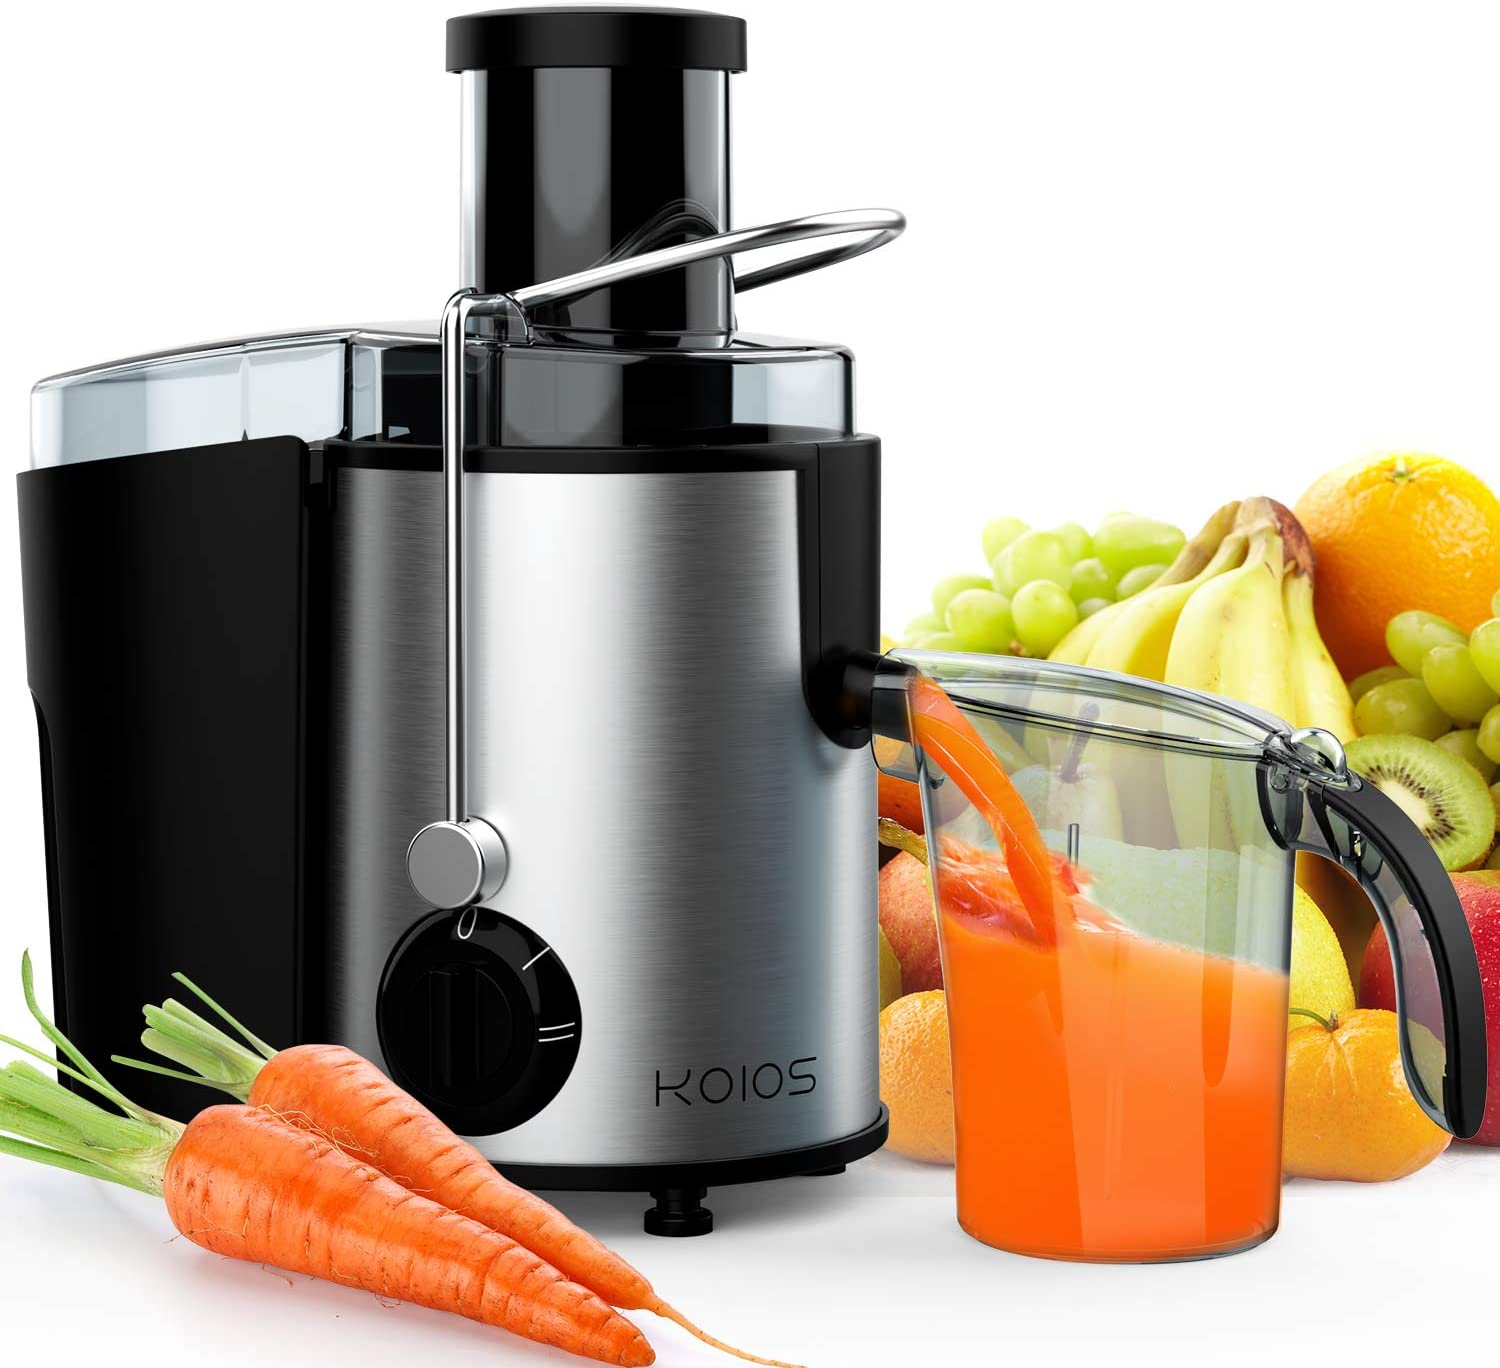 KOIOS Centrifugal Juicer, Juicer Machines for Fruits &Vegetables, Centrifugal Juice Extractor Easy Clean with Wide Mouth Feed Chute, 304 Stainless Steel Filter, BPA Free, Powerful&800W, Brush Included